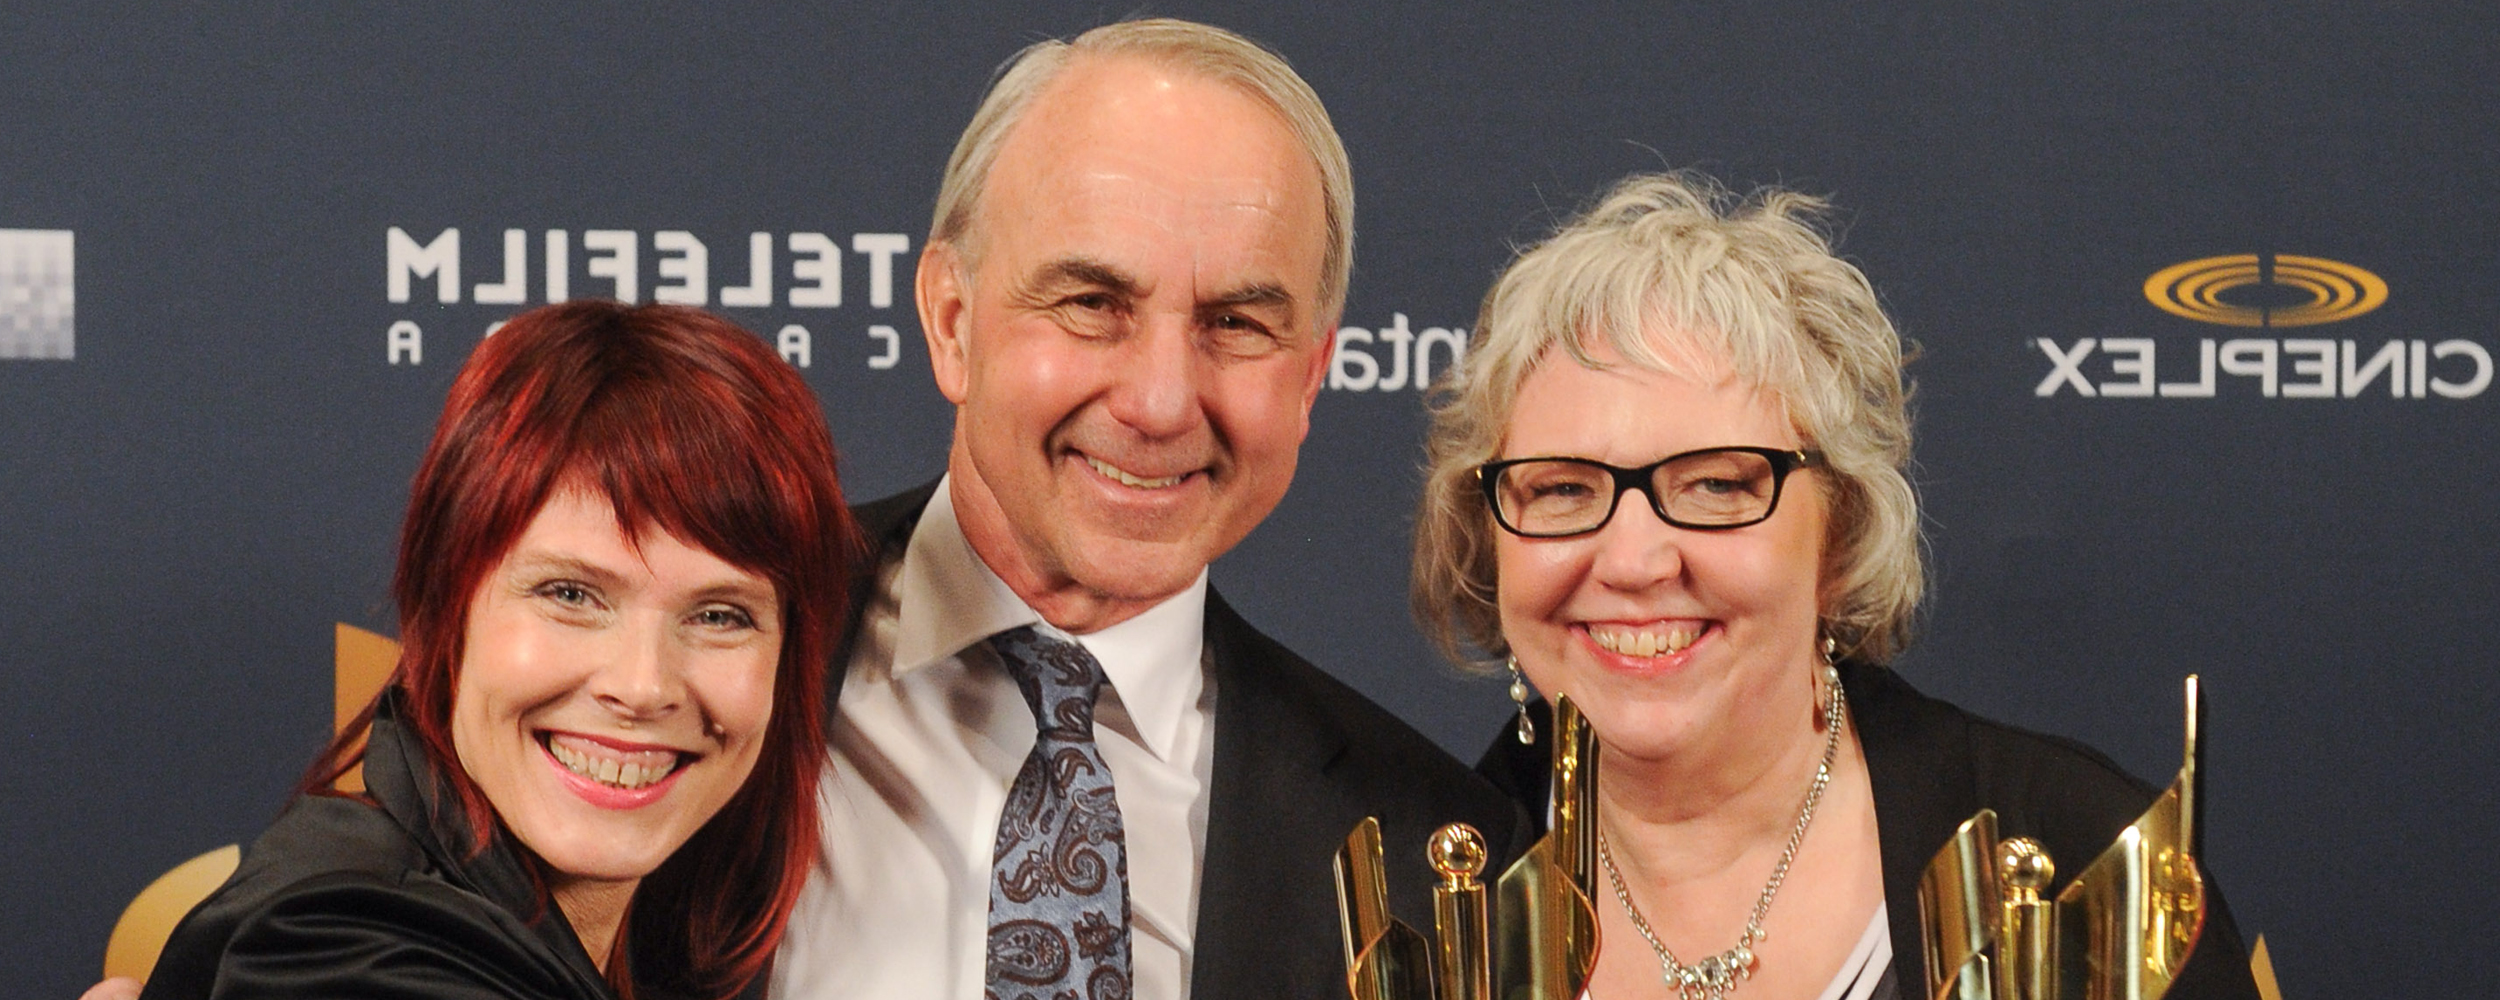 MUSE ENTERTAINMENT BRINGS HOME THREE CANADIAN SCREEN AWARDS!